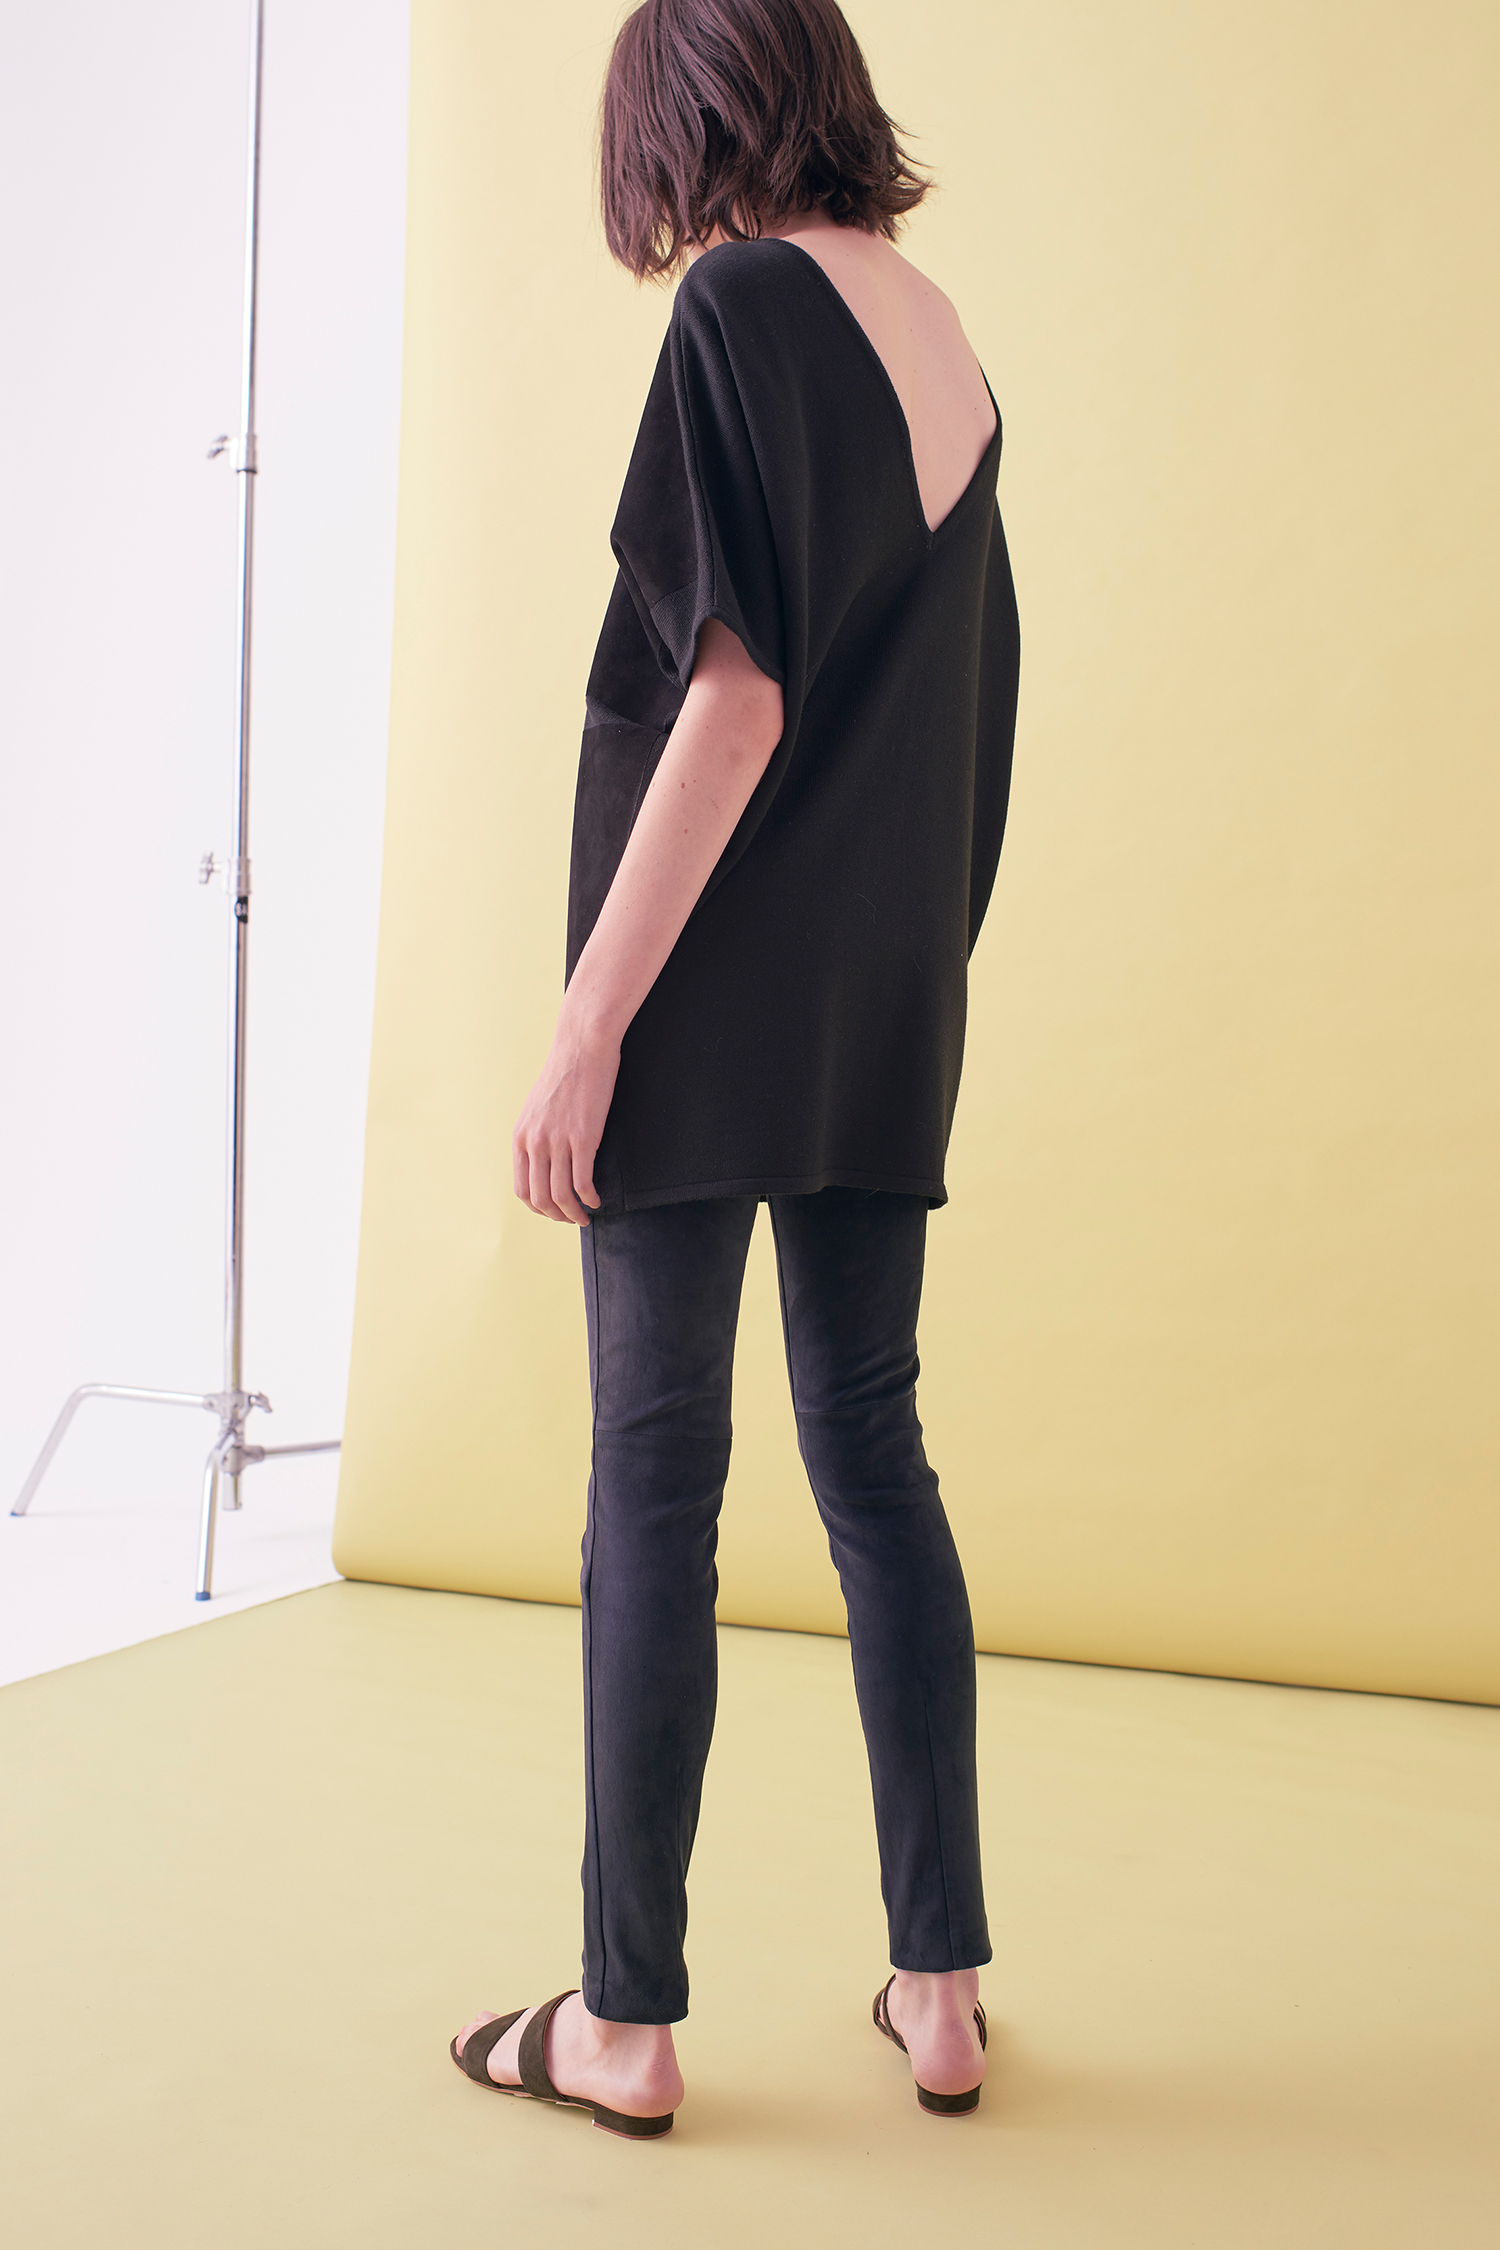 Sarah_Swann_SS17_04_Suede_And_Knit_Sweater_Midnight_B.jpg